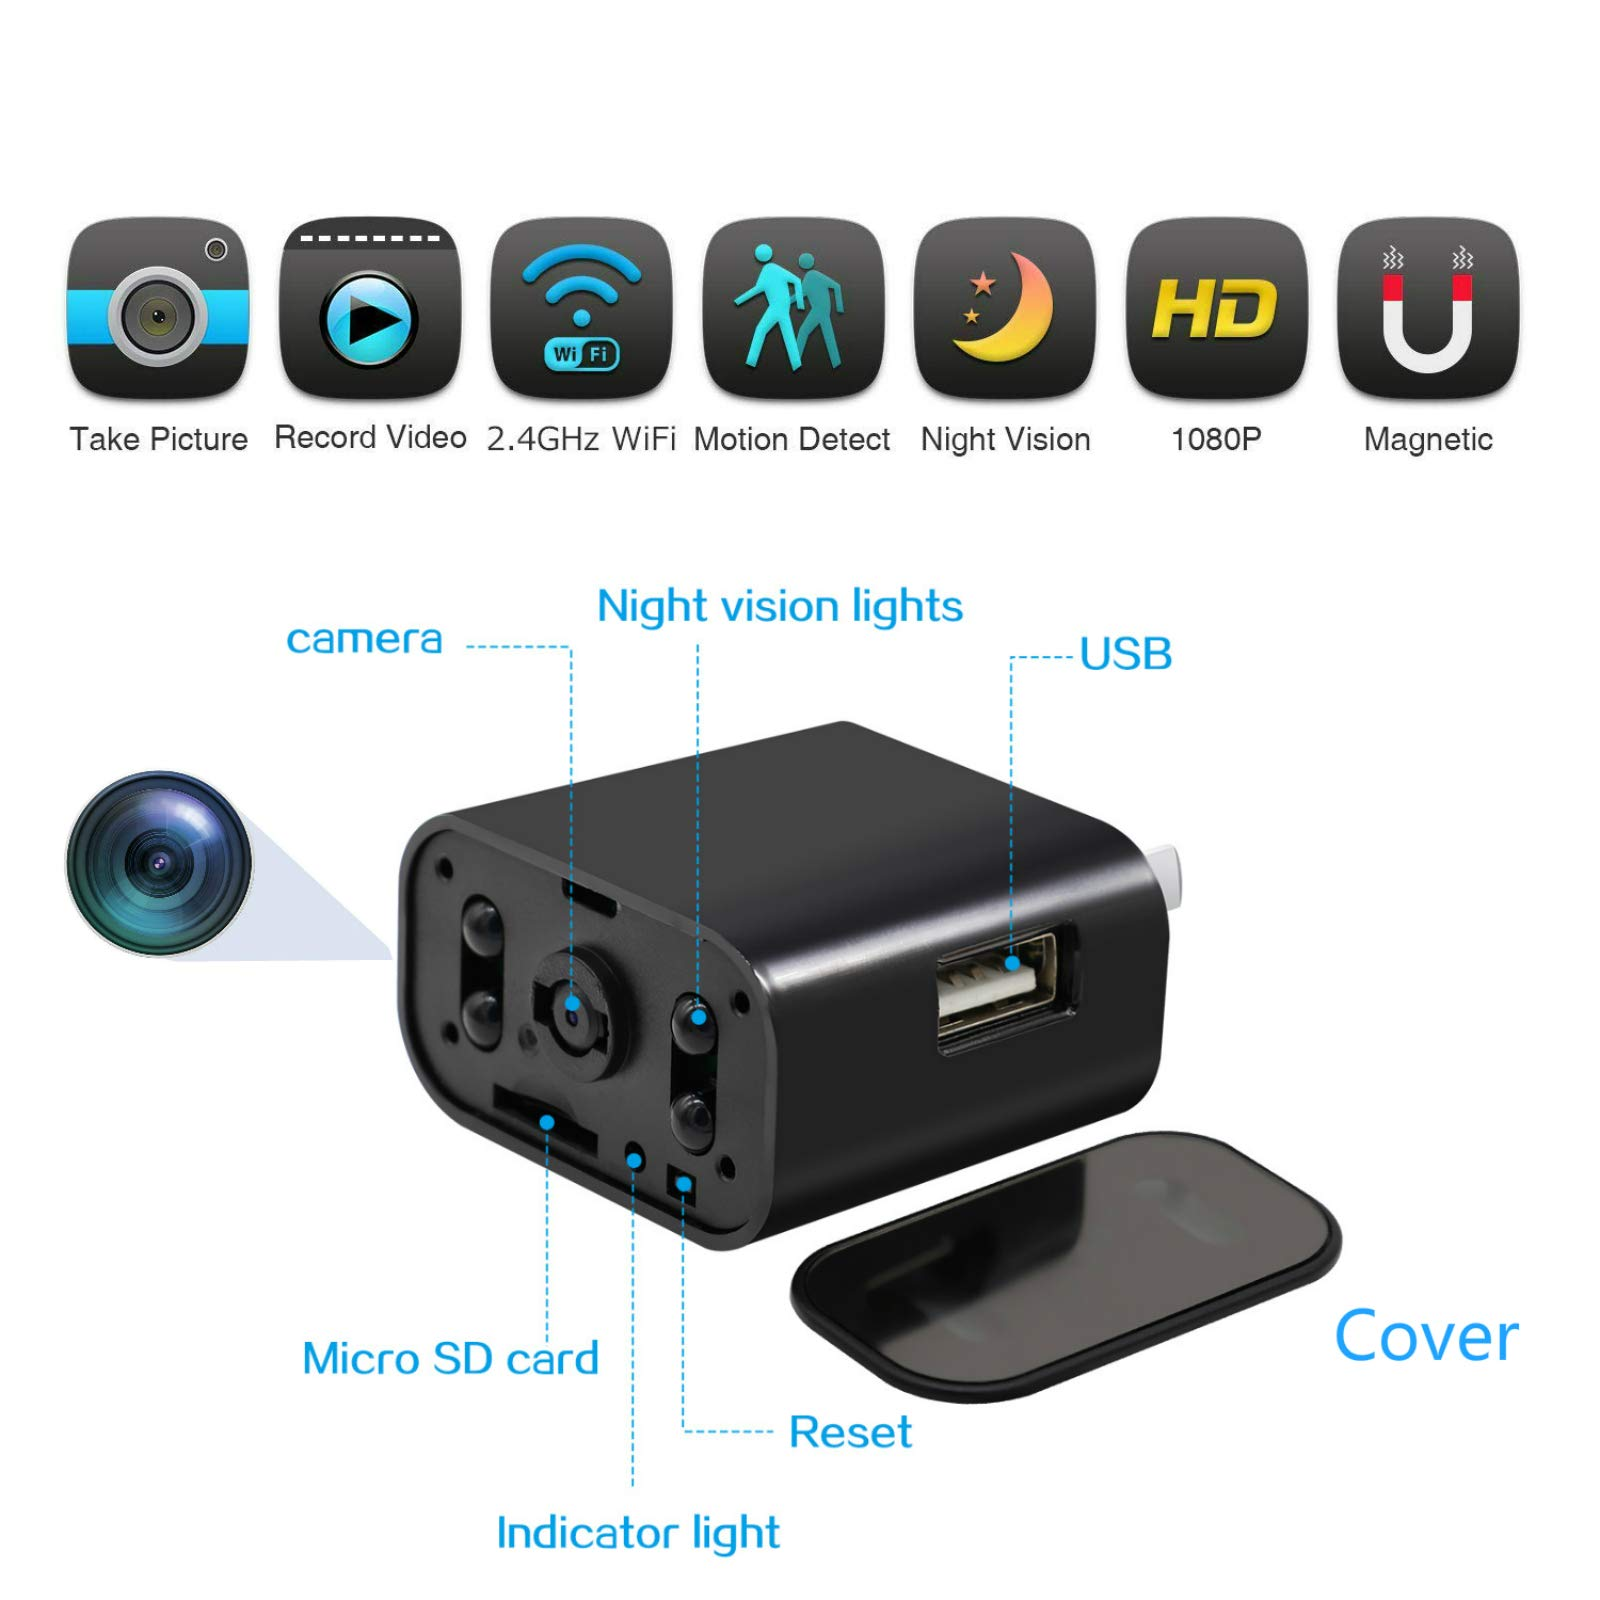 fomei Hidden Camera Spy Camera Night Vision WiFi Wireless Full HD 1080P Security Camera Motion Activated Indoor Outdoor Small Nanny Cam for Cars Home Apartment by fomei